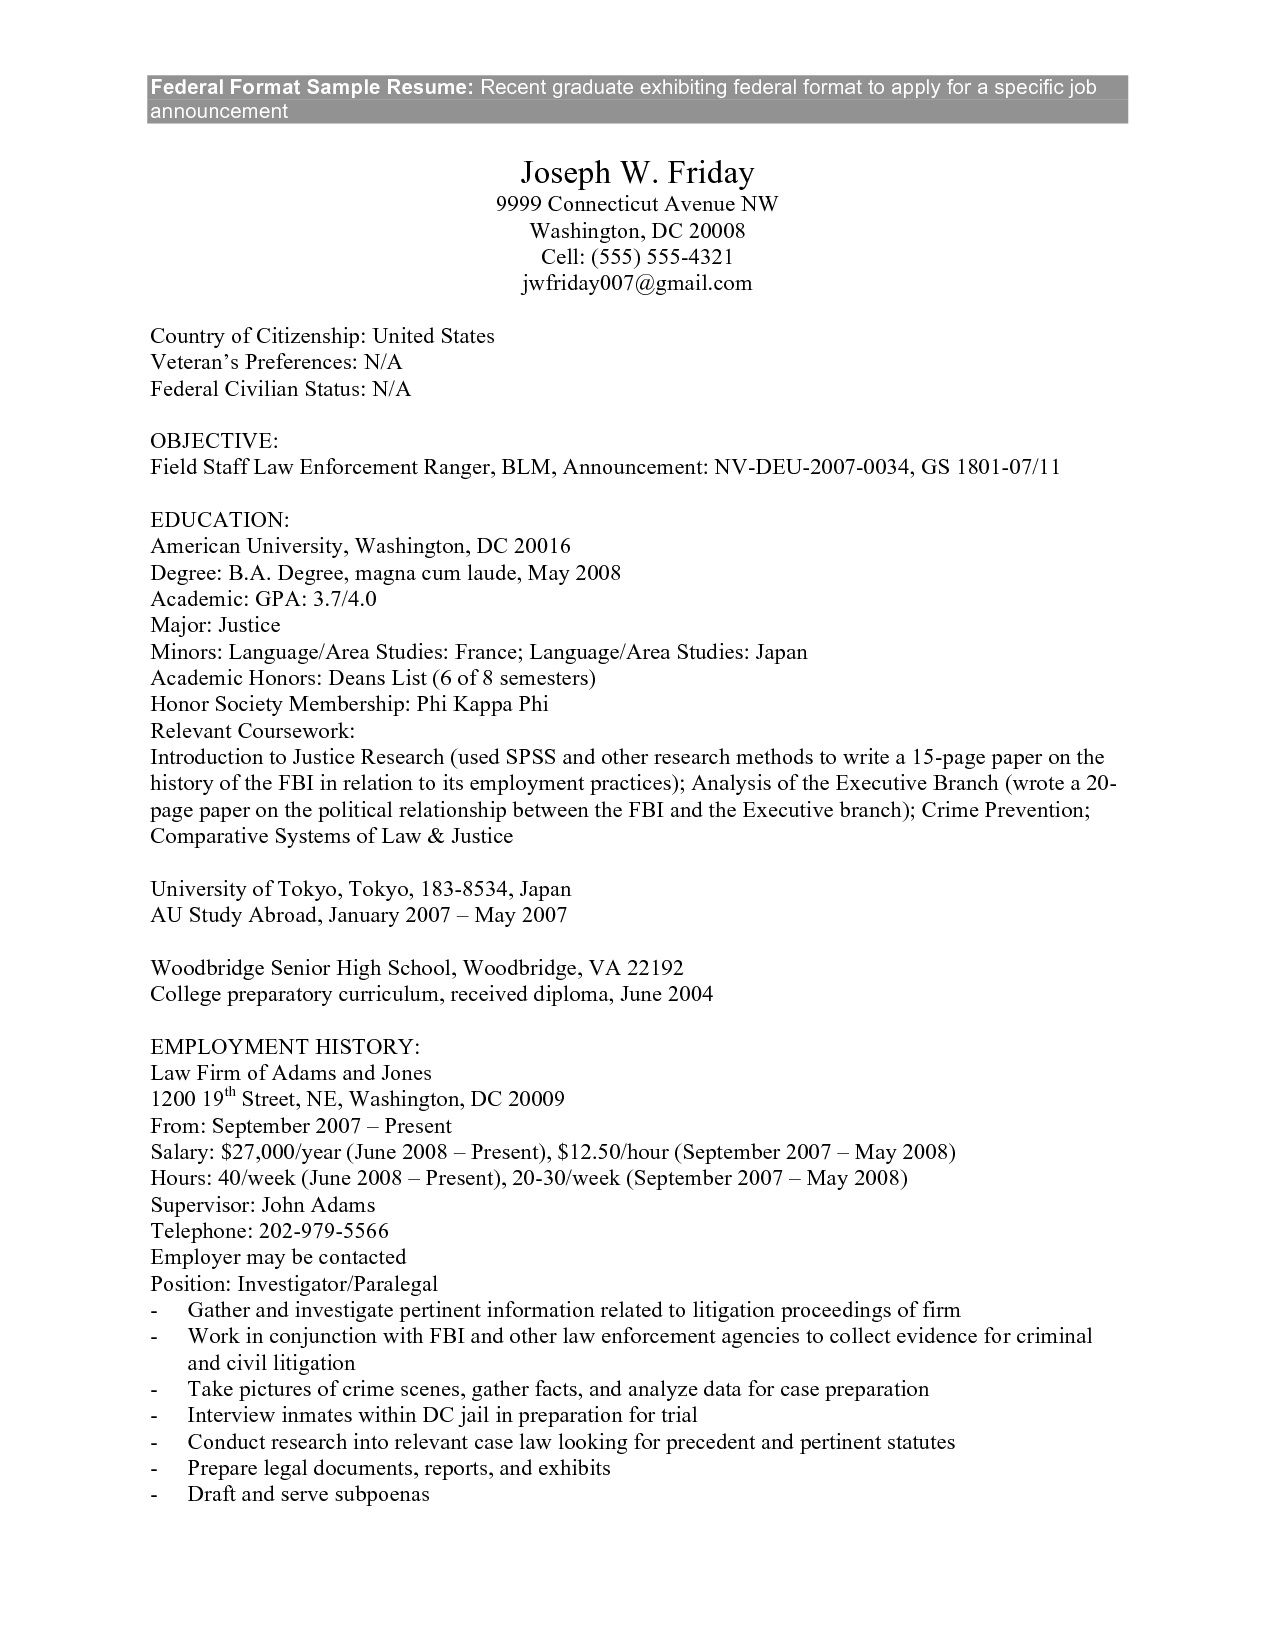 Government Resume Template Federal Government Resume Example  Federal Government Resume